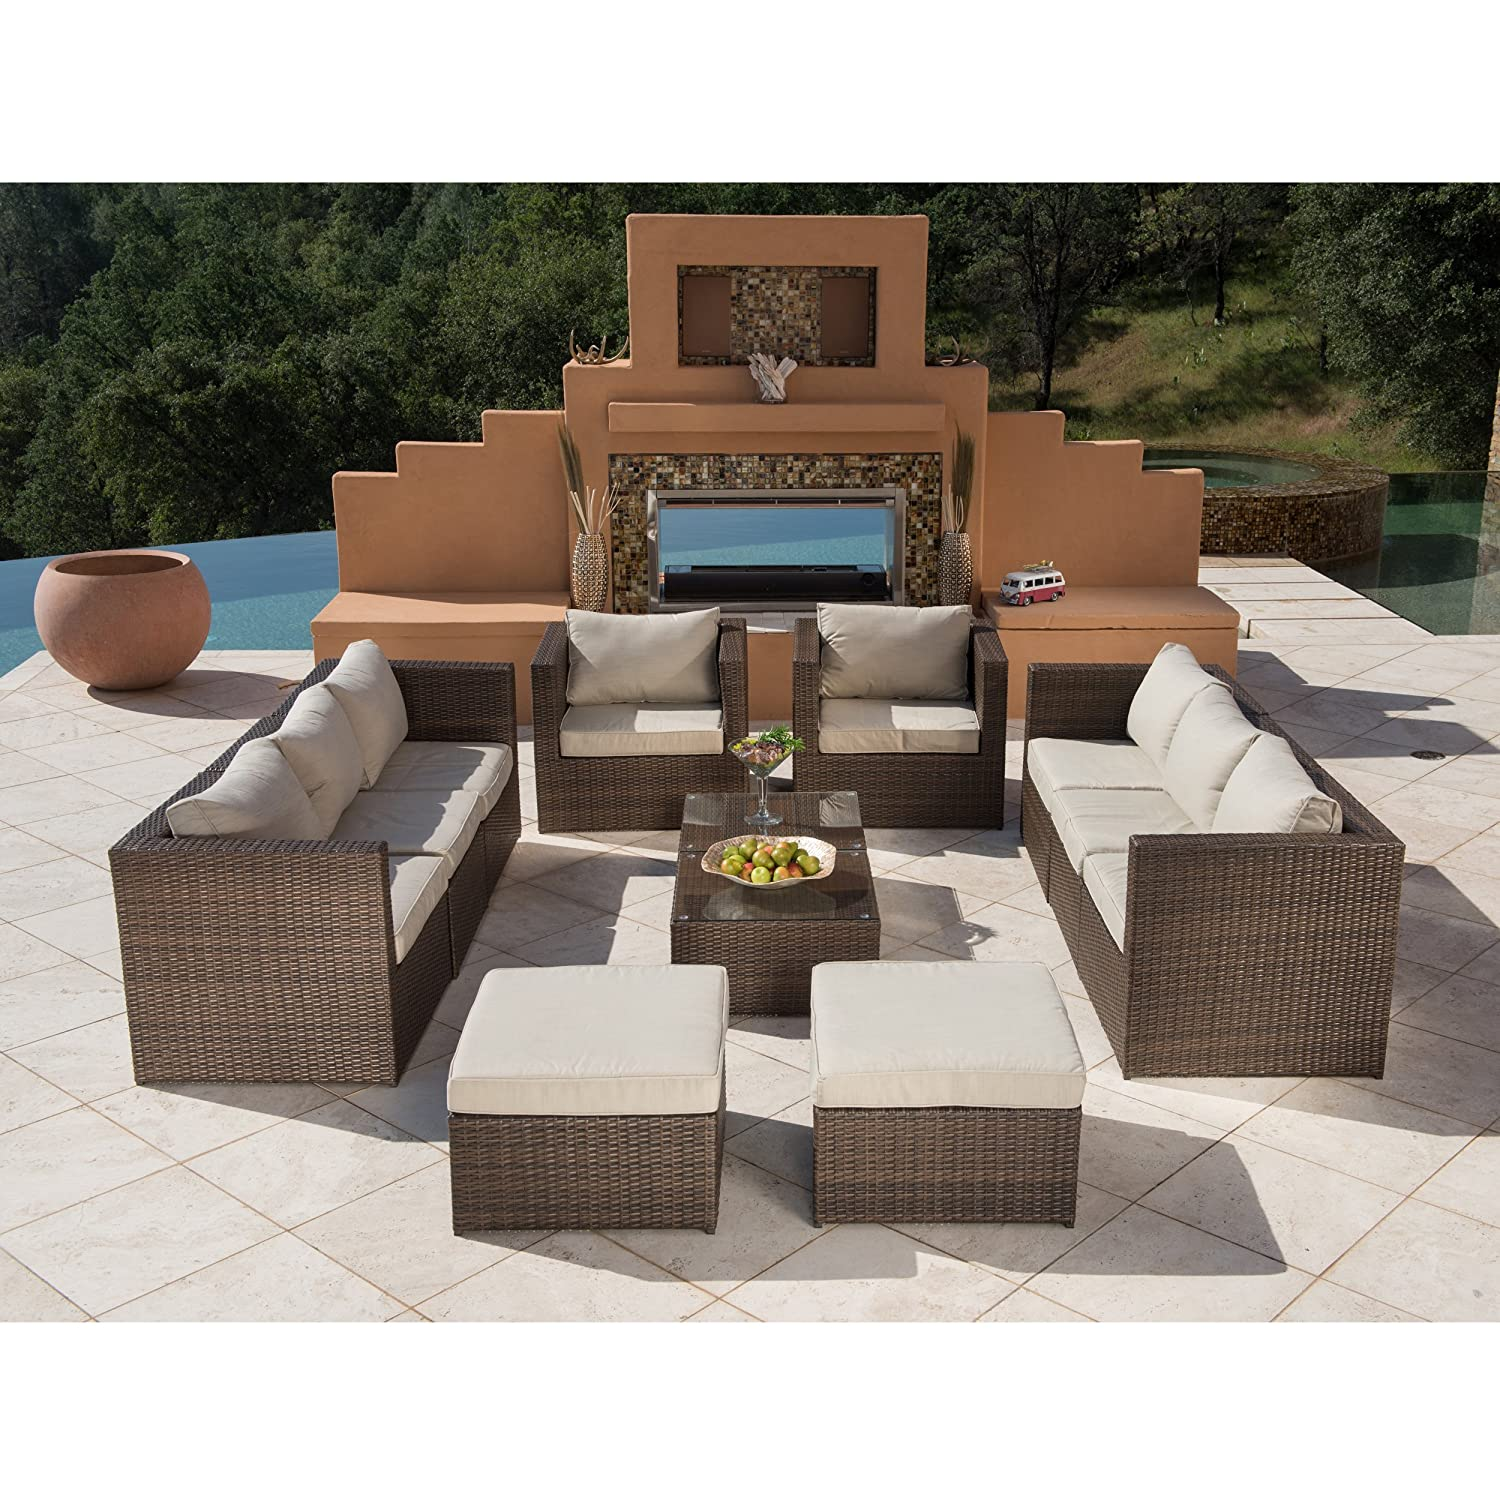 Amazon 12pc Outdoor Rattan Wicker Sofa Sectional Patio